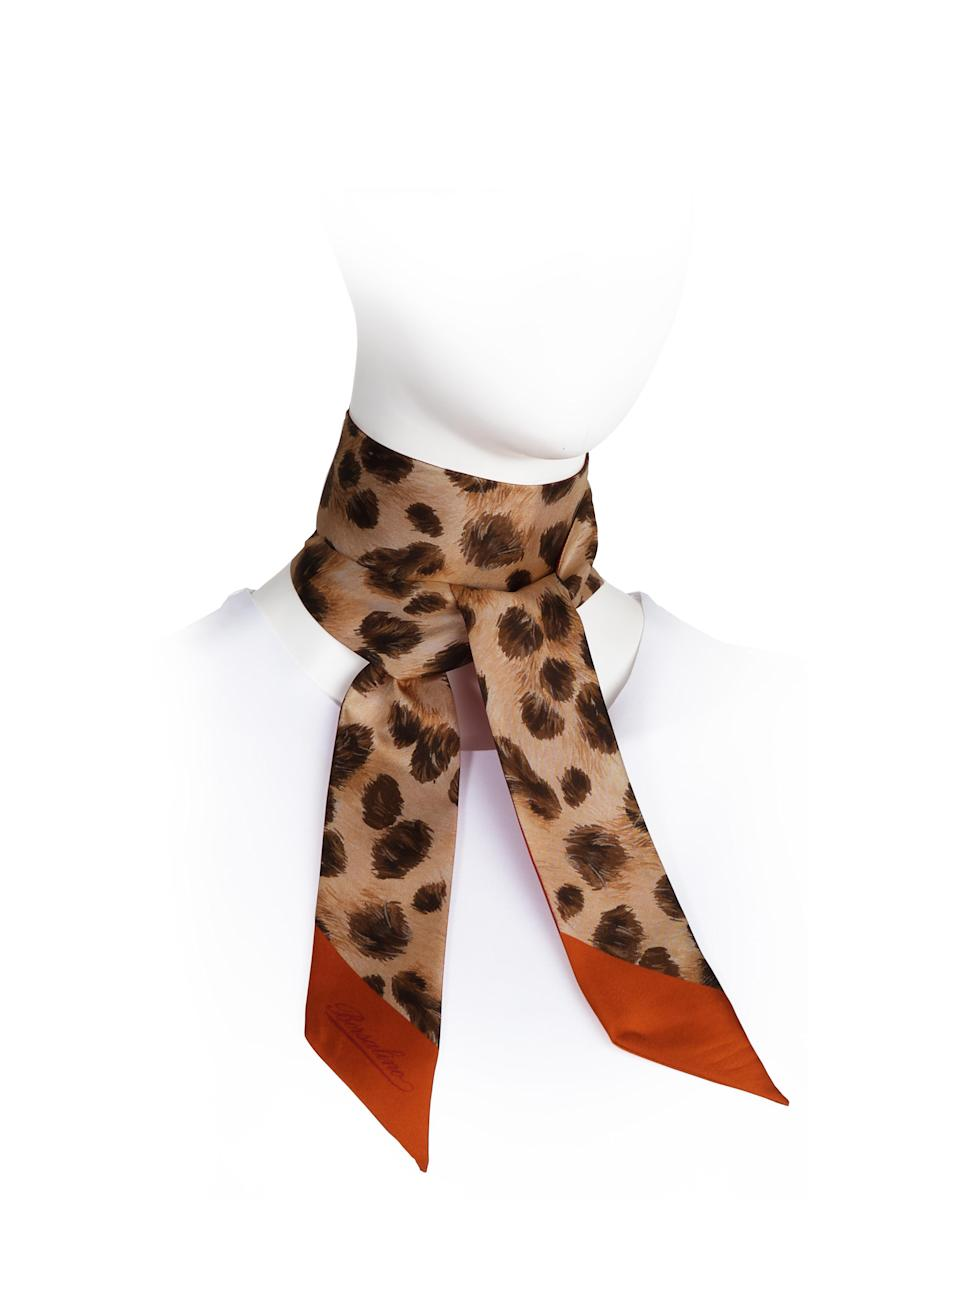 A Borsalino scarf manufactured under license by Isa SpA. - Credit: Courtesy of Borsalino